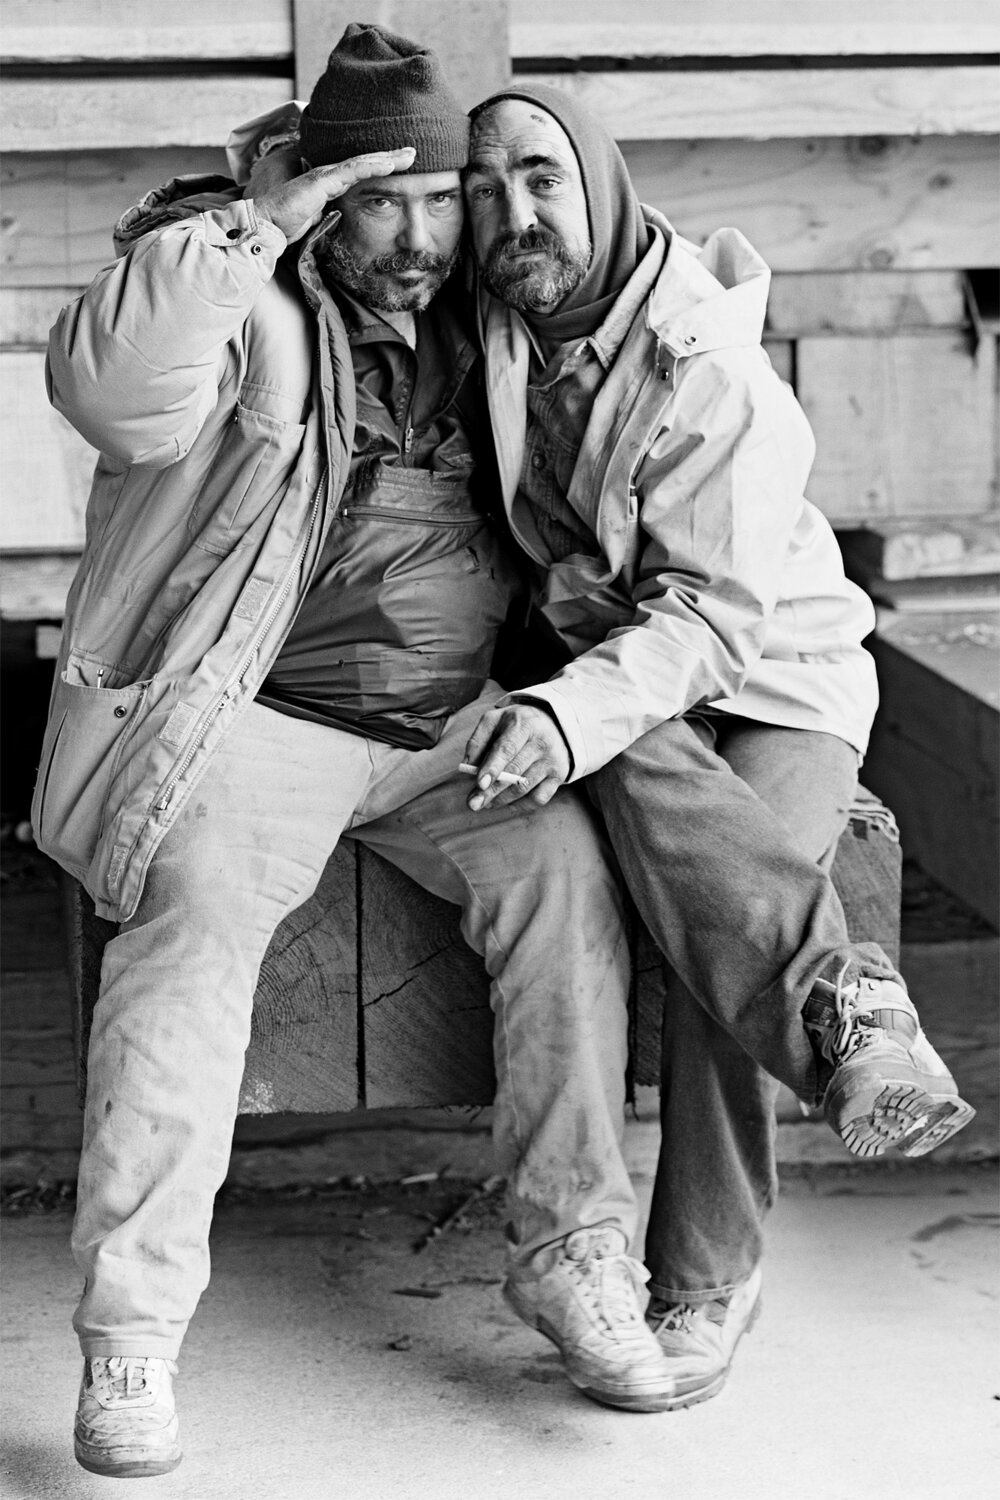 Norm and Sully. Embarcadero Freeway San Francisco, 1990